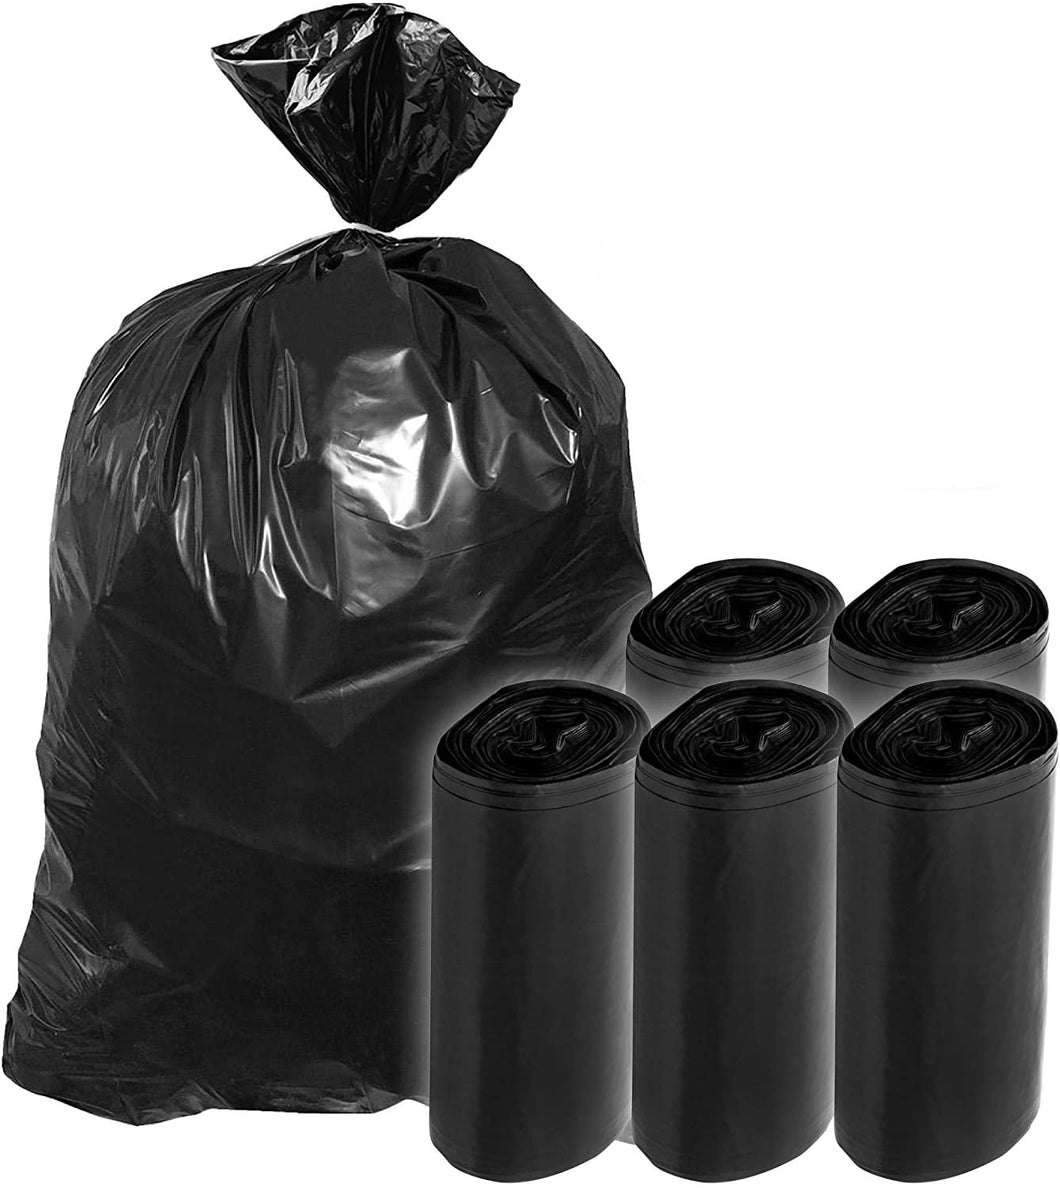 1504 Disposable Eco-friendly Garbage/Dustbin/Trash Bag (Pack of 30) (Size 19X21)